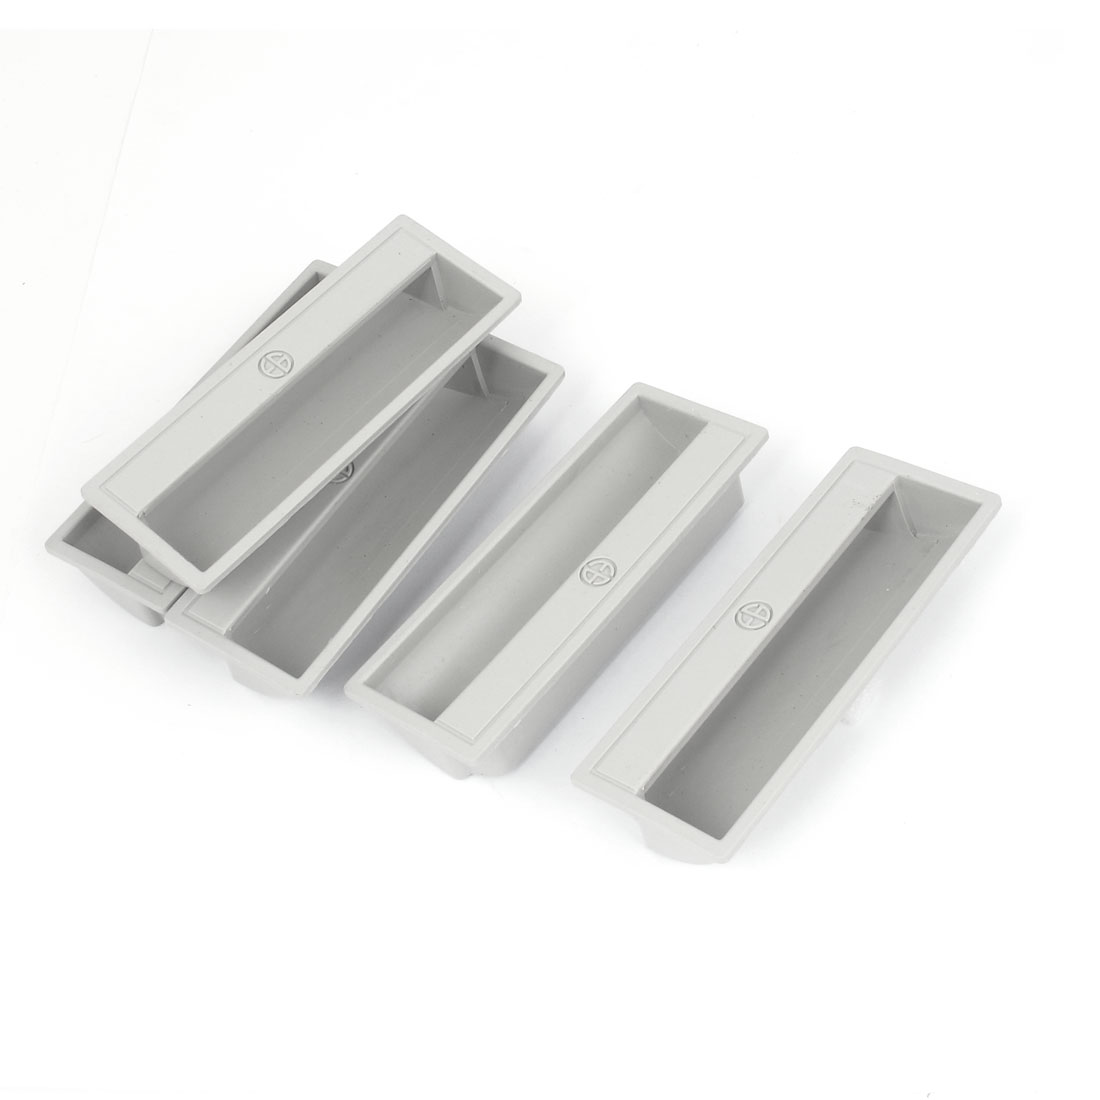 5pcs Gray Plastic Rectangular Drawer Cabinet Door Finger Insert Recessed Flush Pull Handle